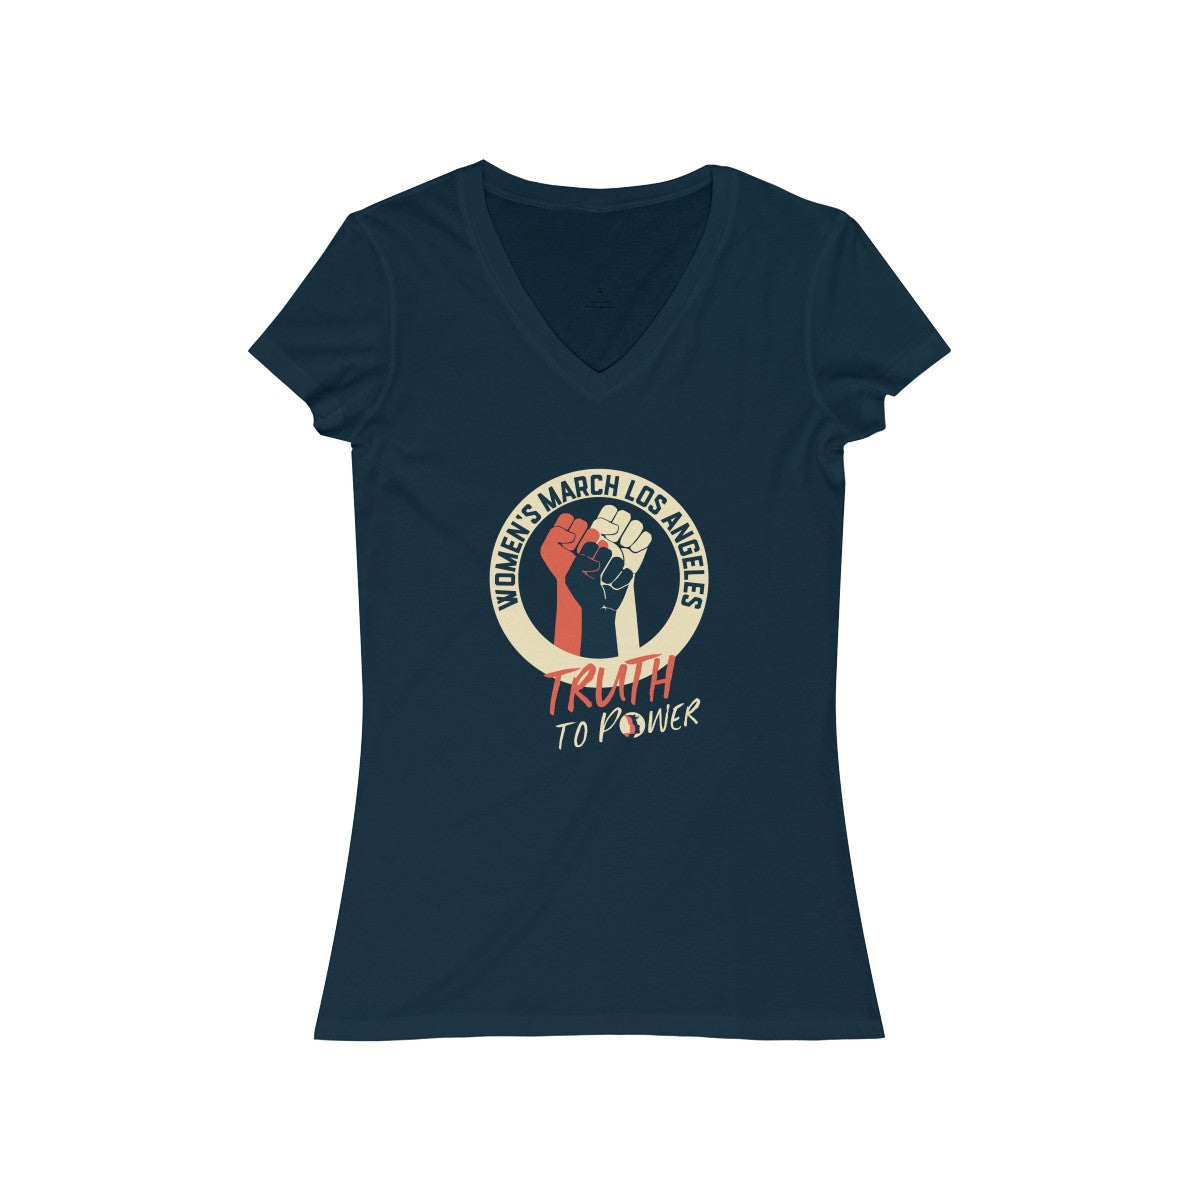 Women's March LA Truth to Power Women's Jersey Short Sleeve V-Neck Tee